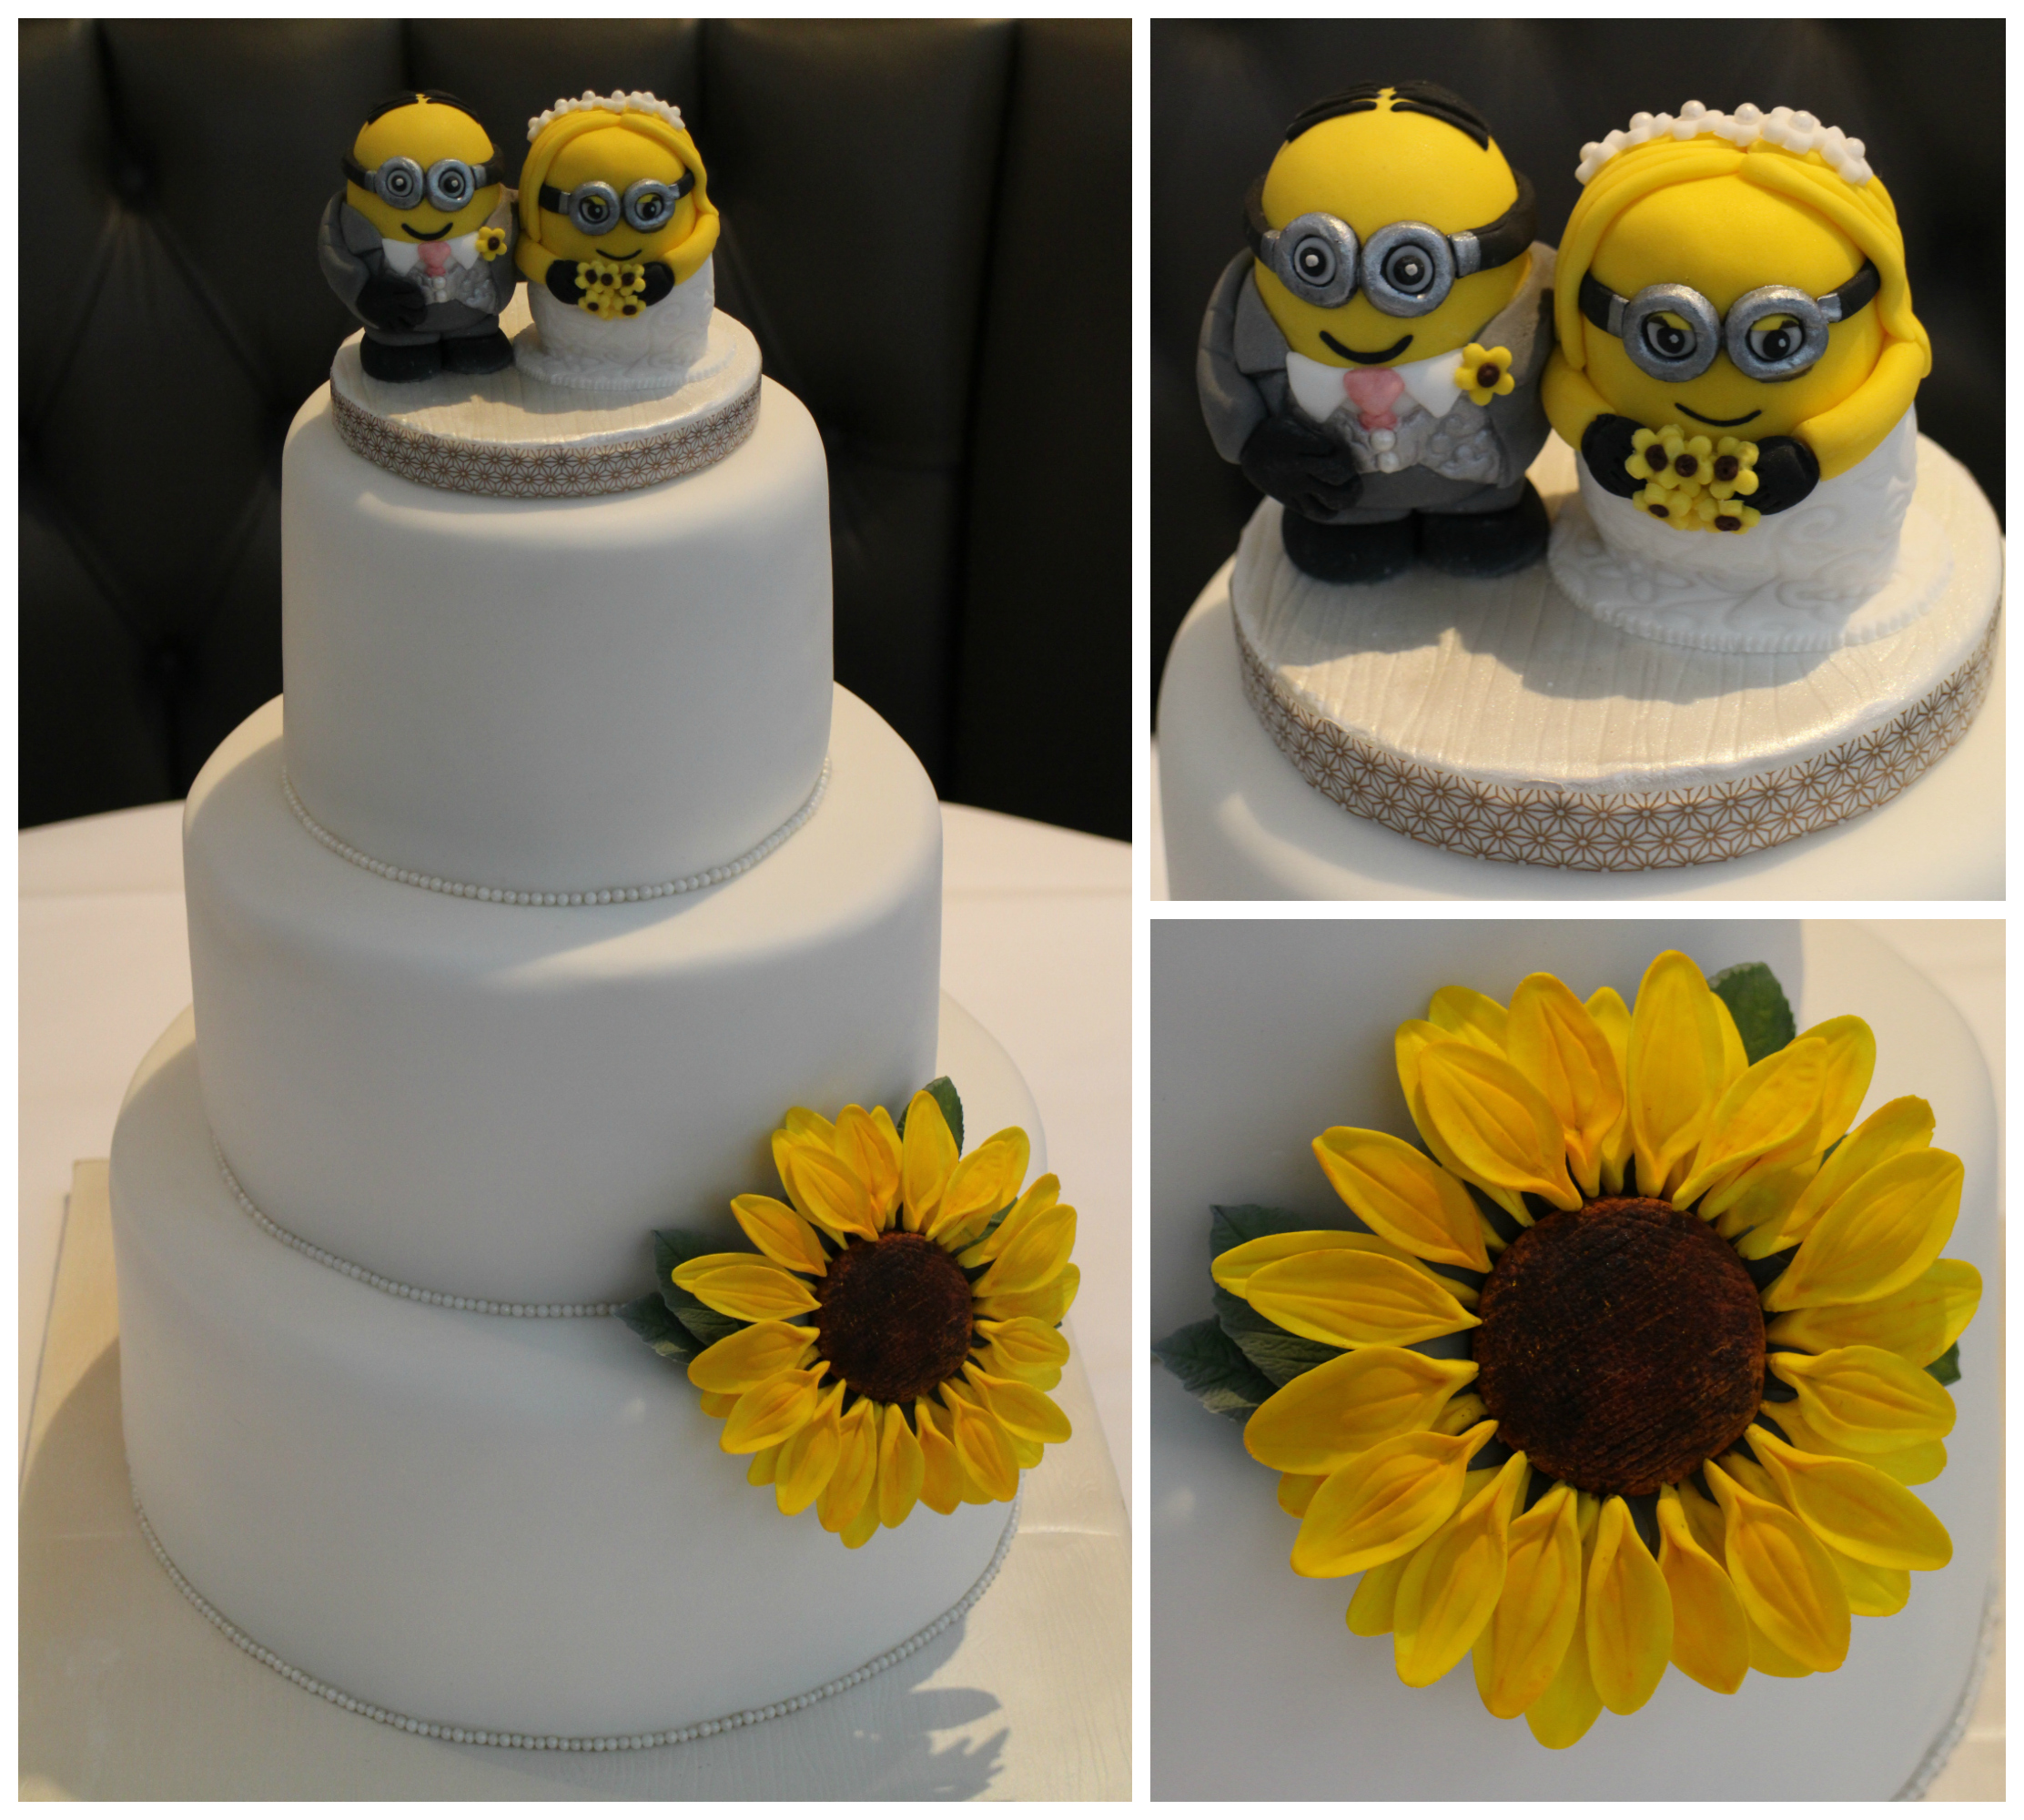 Minion Sunflower Wedding Cake     Serendipity Bakes Congratulations  Mr and Mrs Bourne  I hope you had a truly amazing and  wonderfully special day